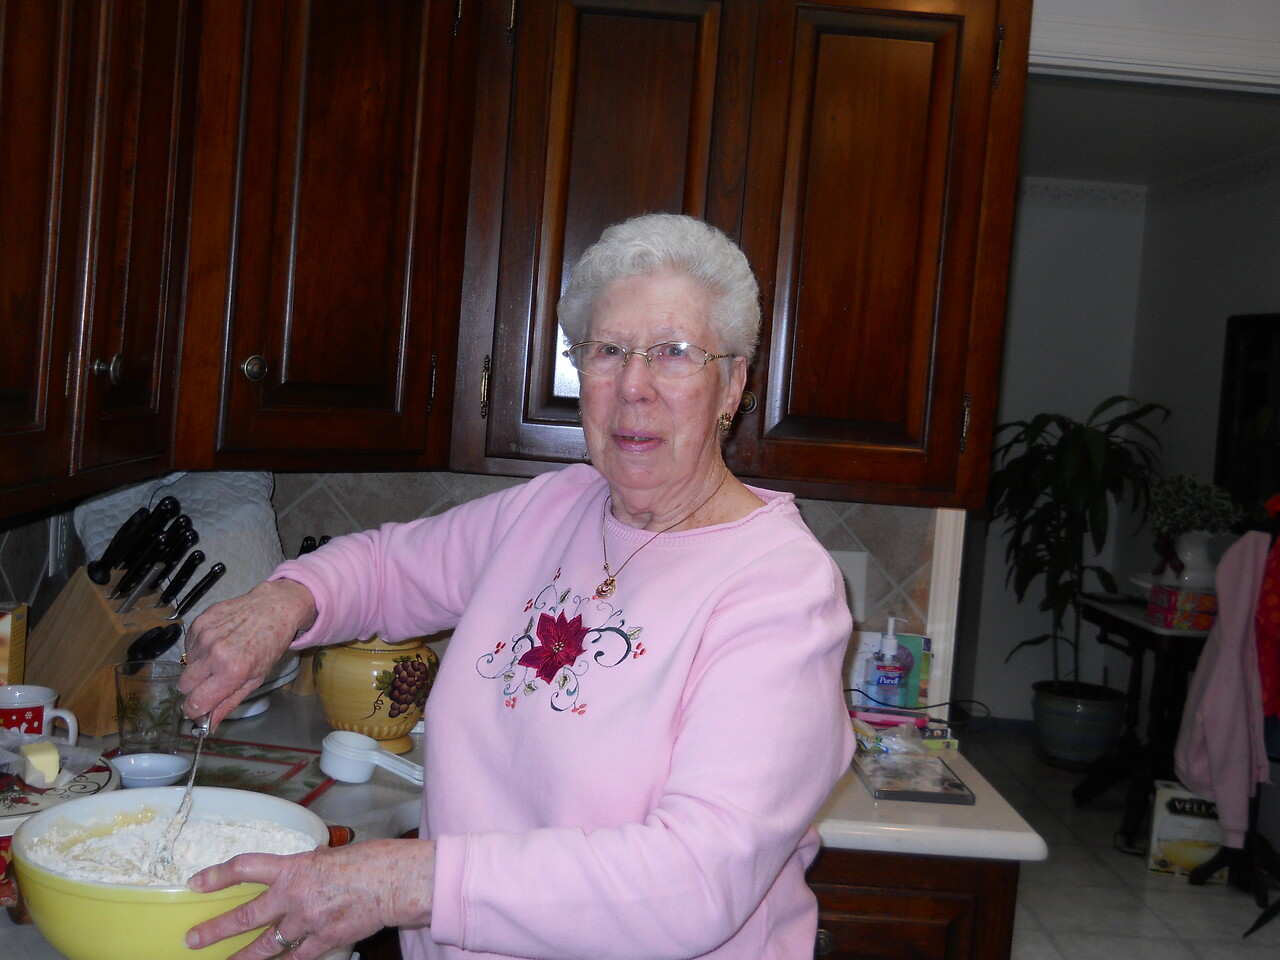 Cookie Day.  Nana mixing up the batter